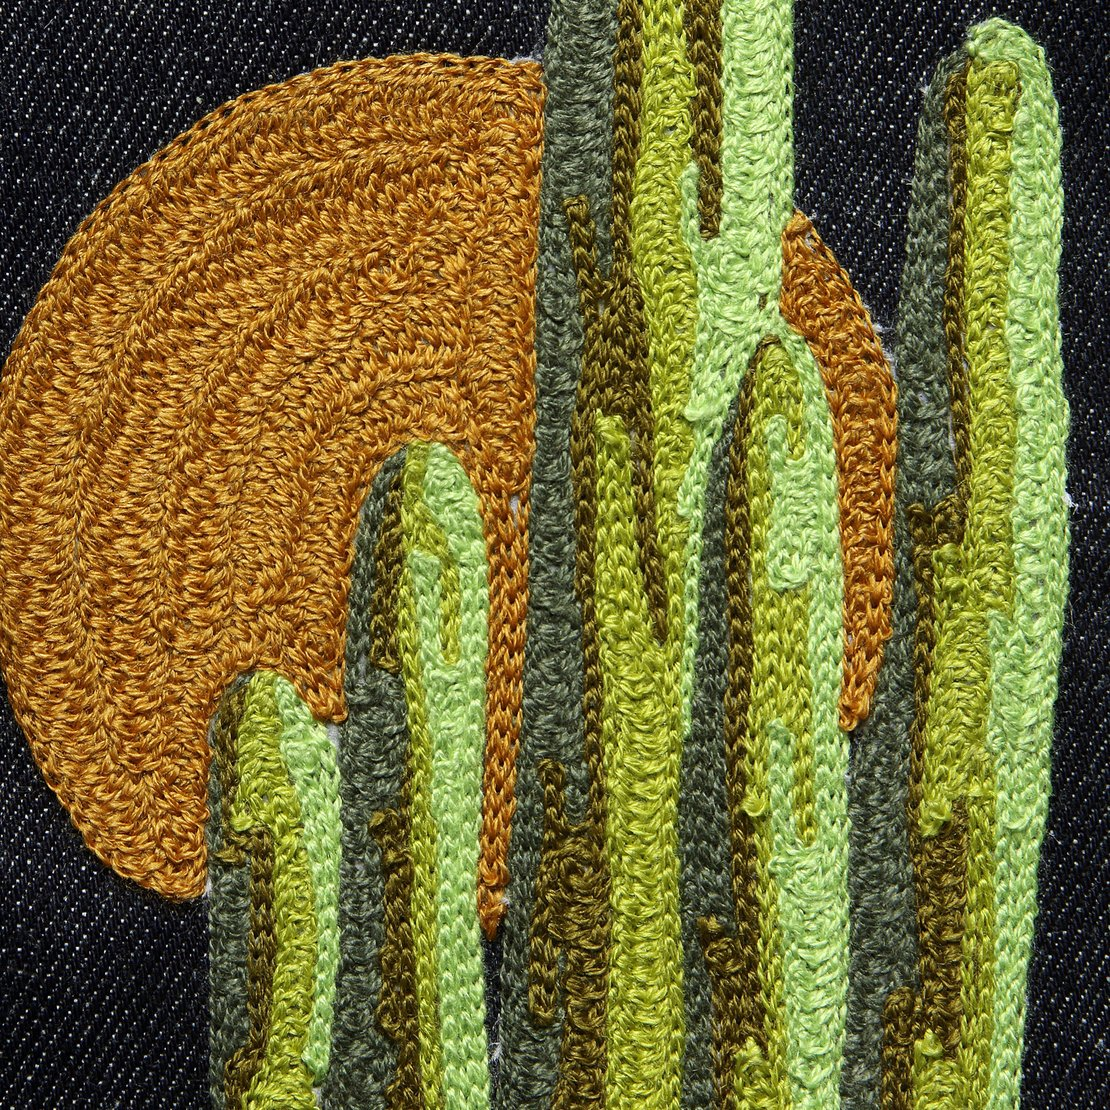 Large Direct Stitch Embroidery - Sunset Saguaro Cactus